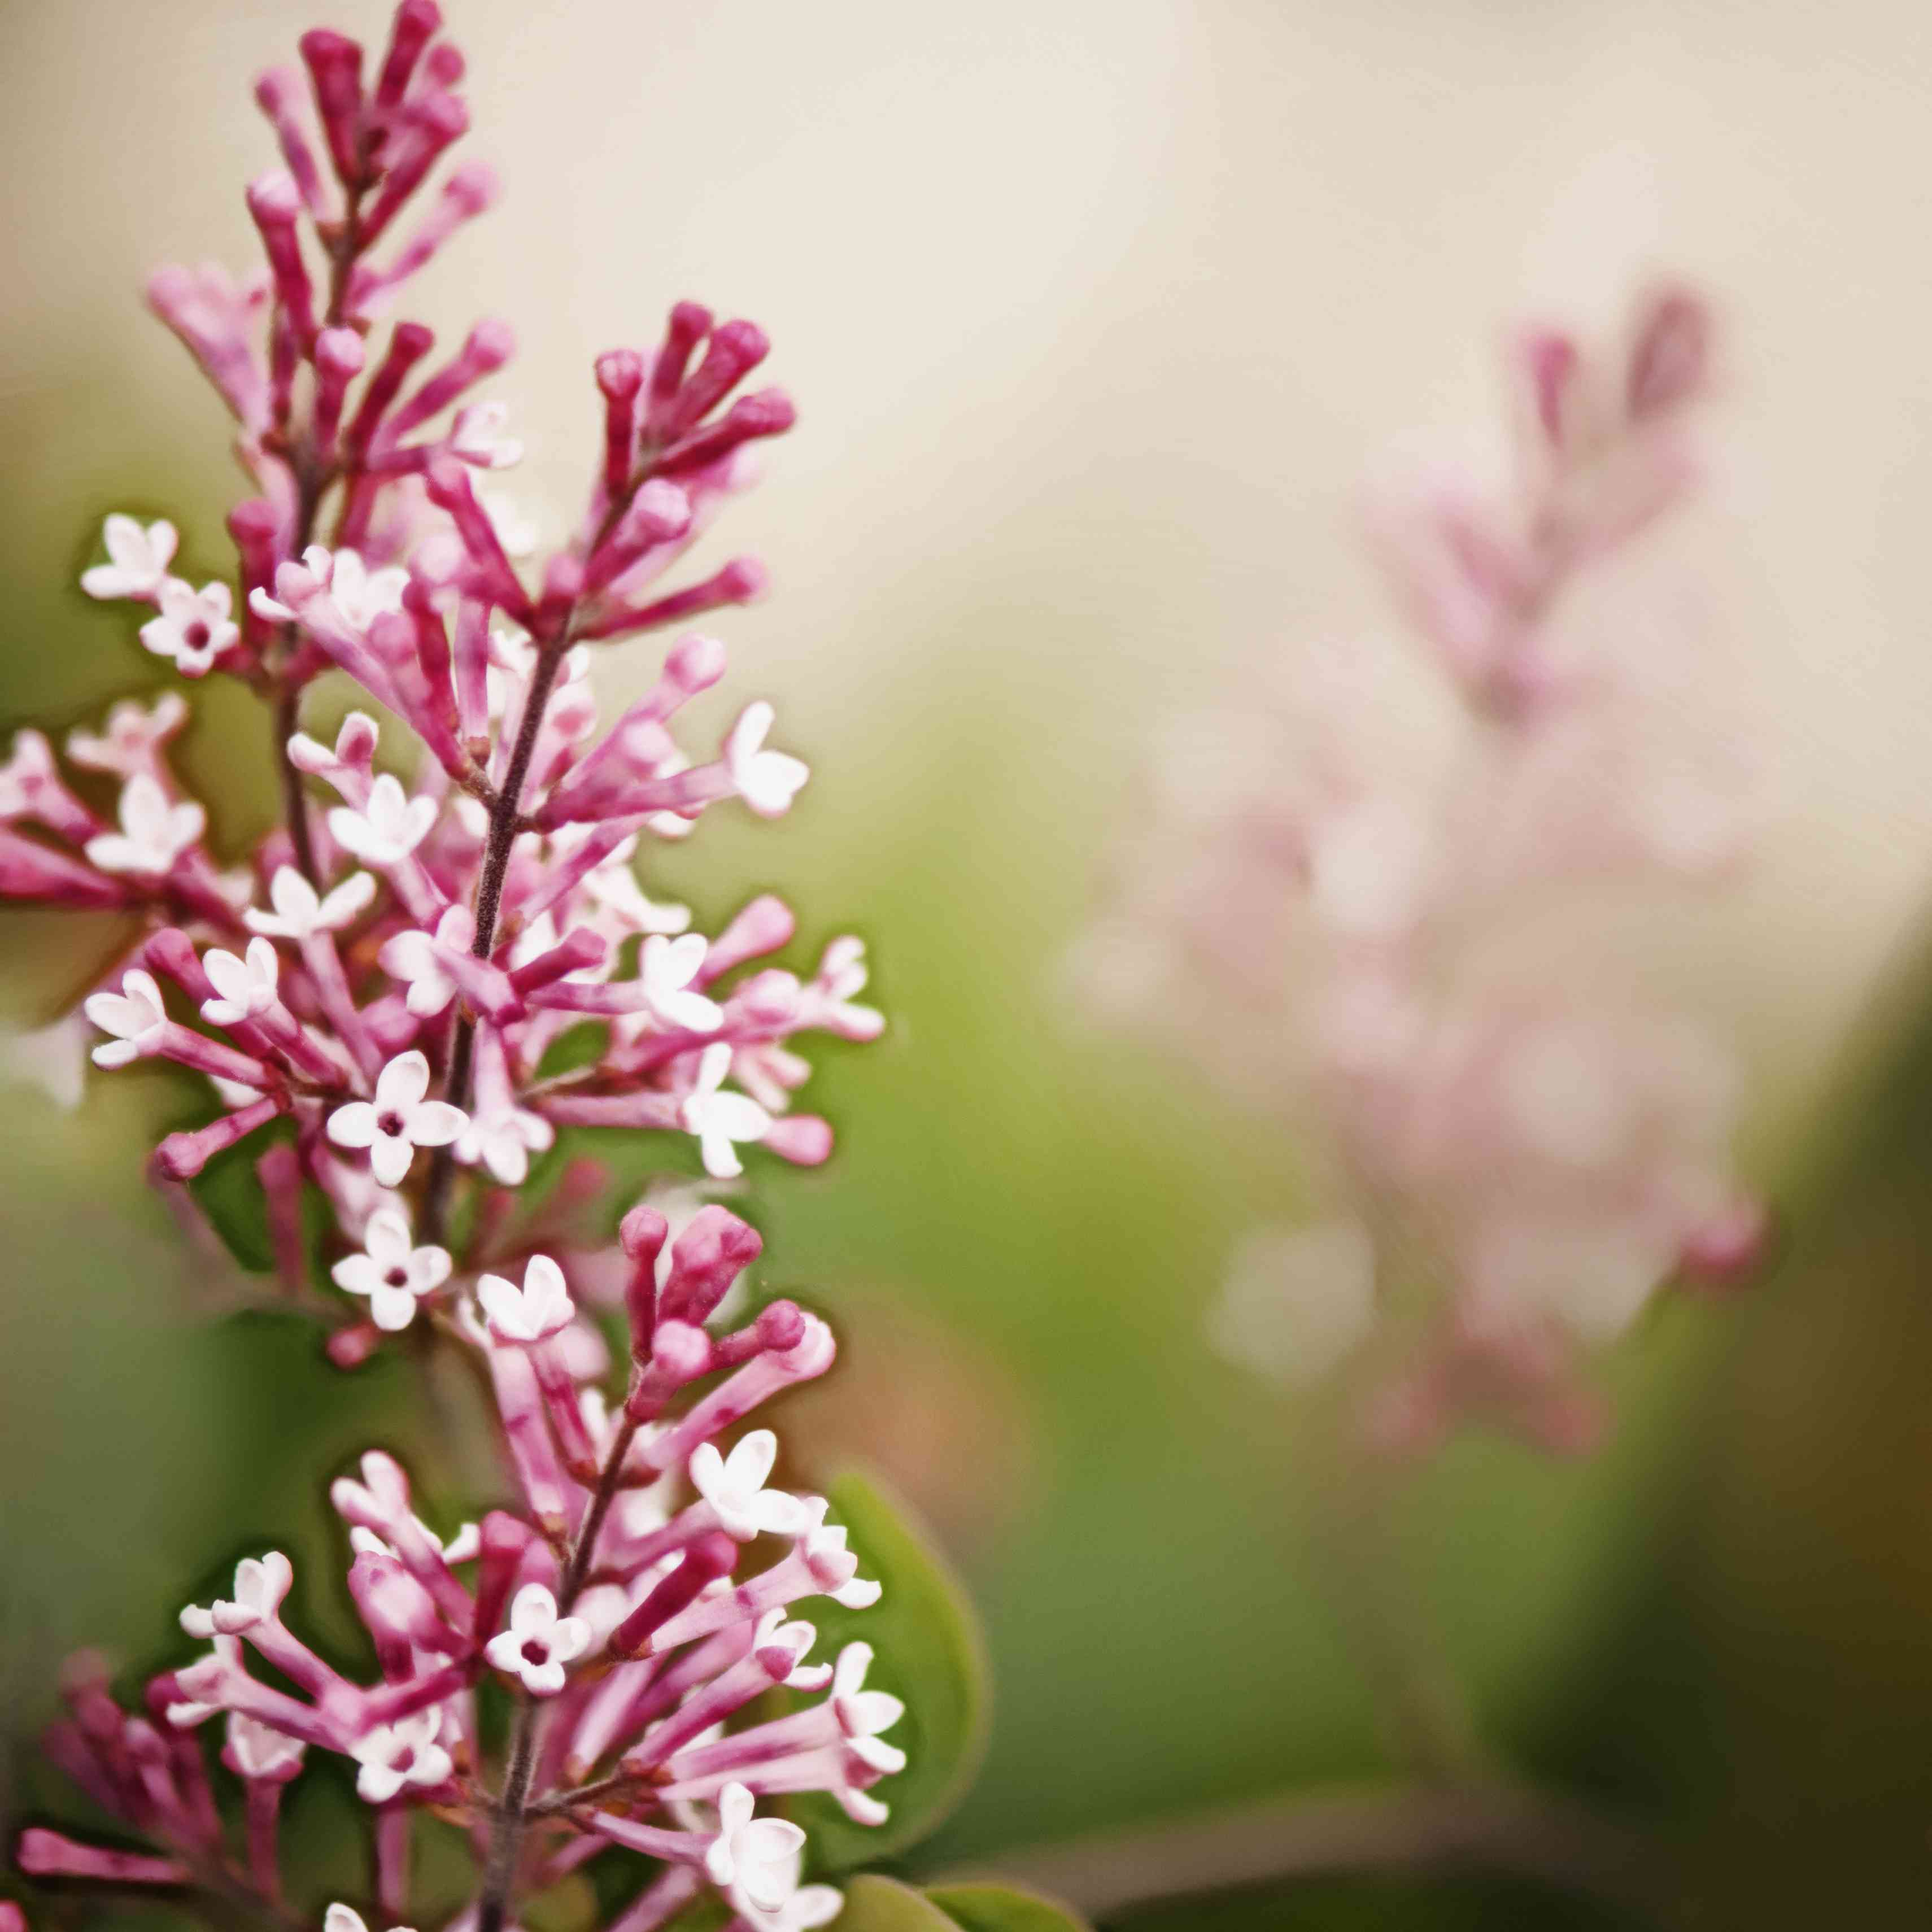 The Bailbelle lilac with pink flowers